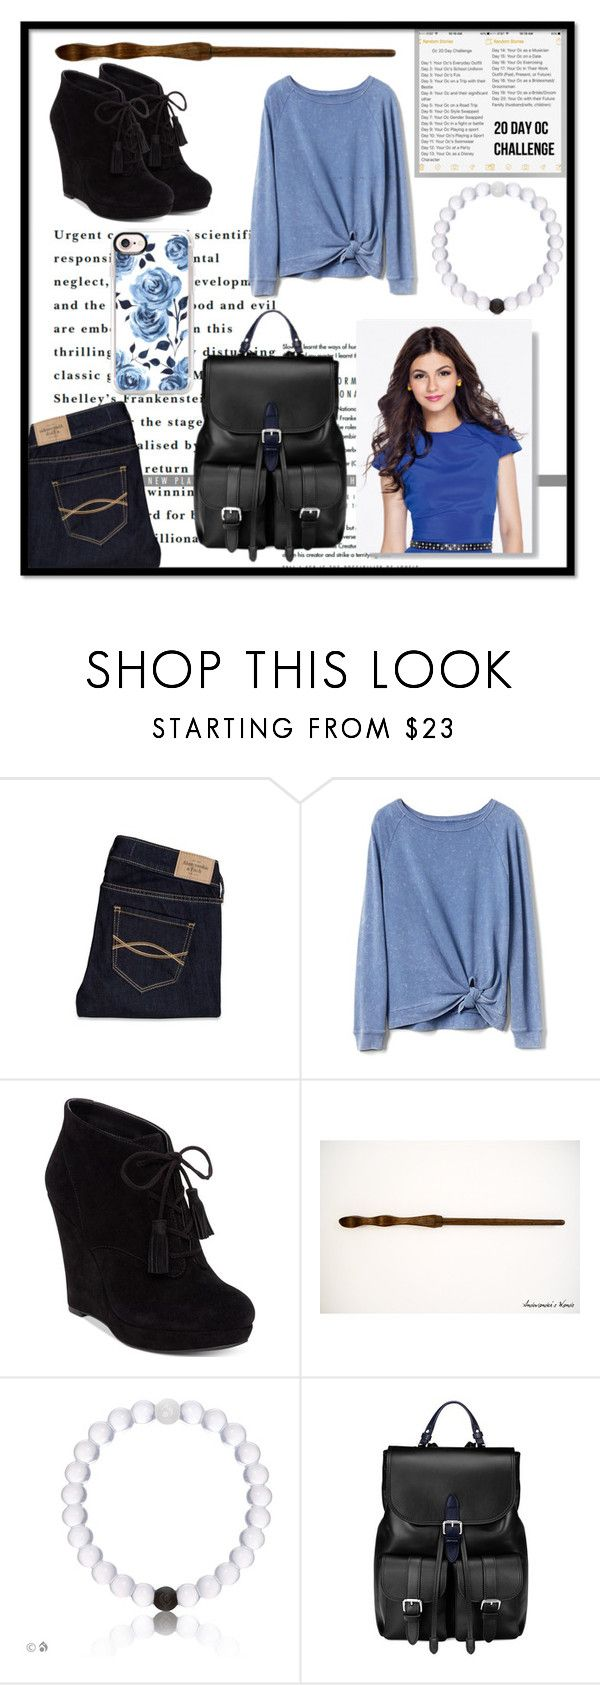 """""""Day One: Ana's Everyday Outfit"""" by felicityjones0309 ❤ liked on Polyvore featuring Abercrombie & Fitch, Gap, Jessica Simpson, Aspinal of London, Casetify, harrypotter and ravenclaw"""